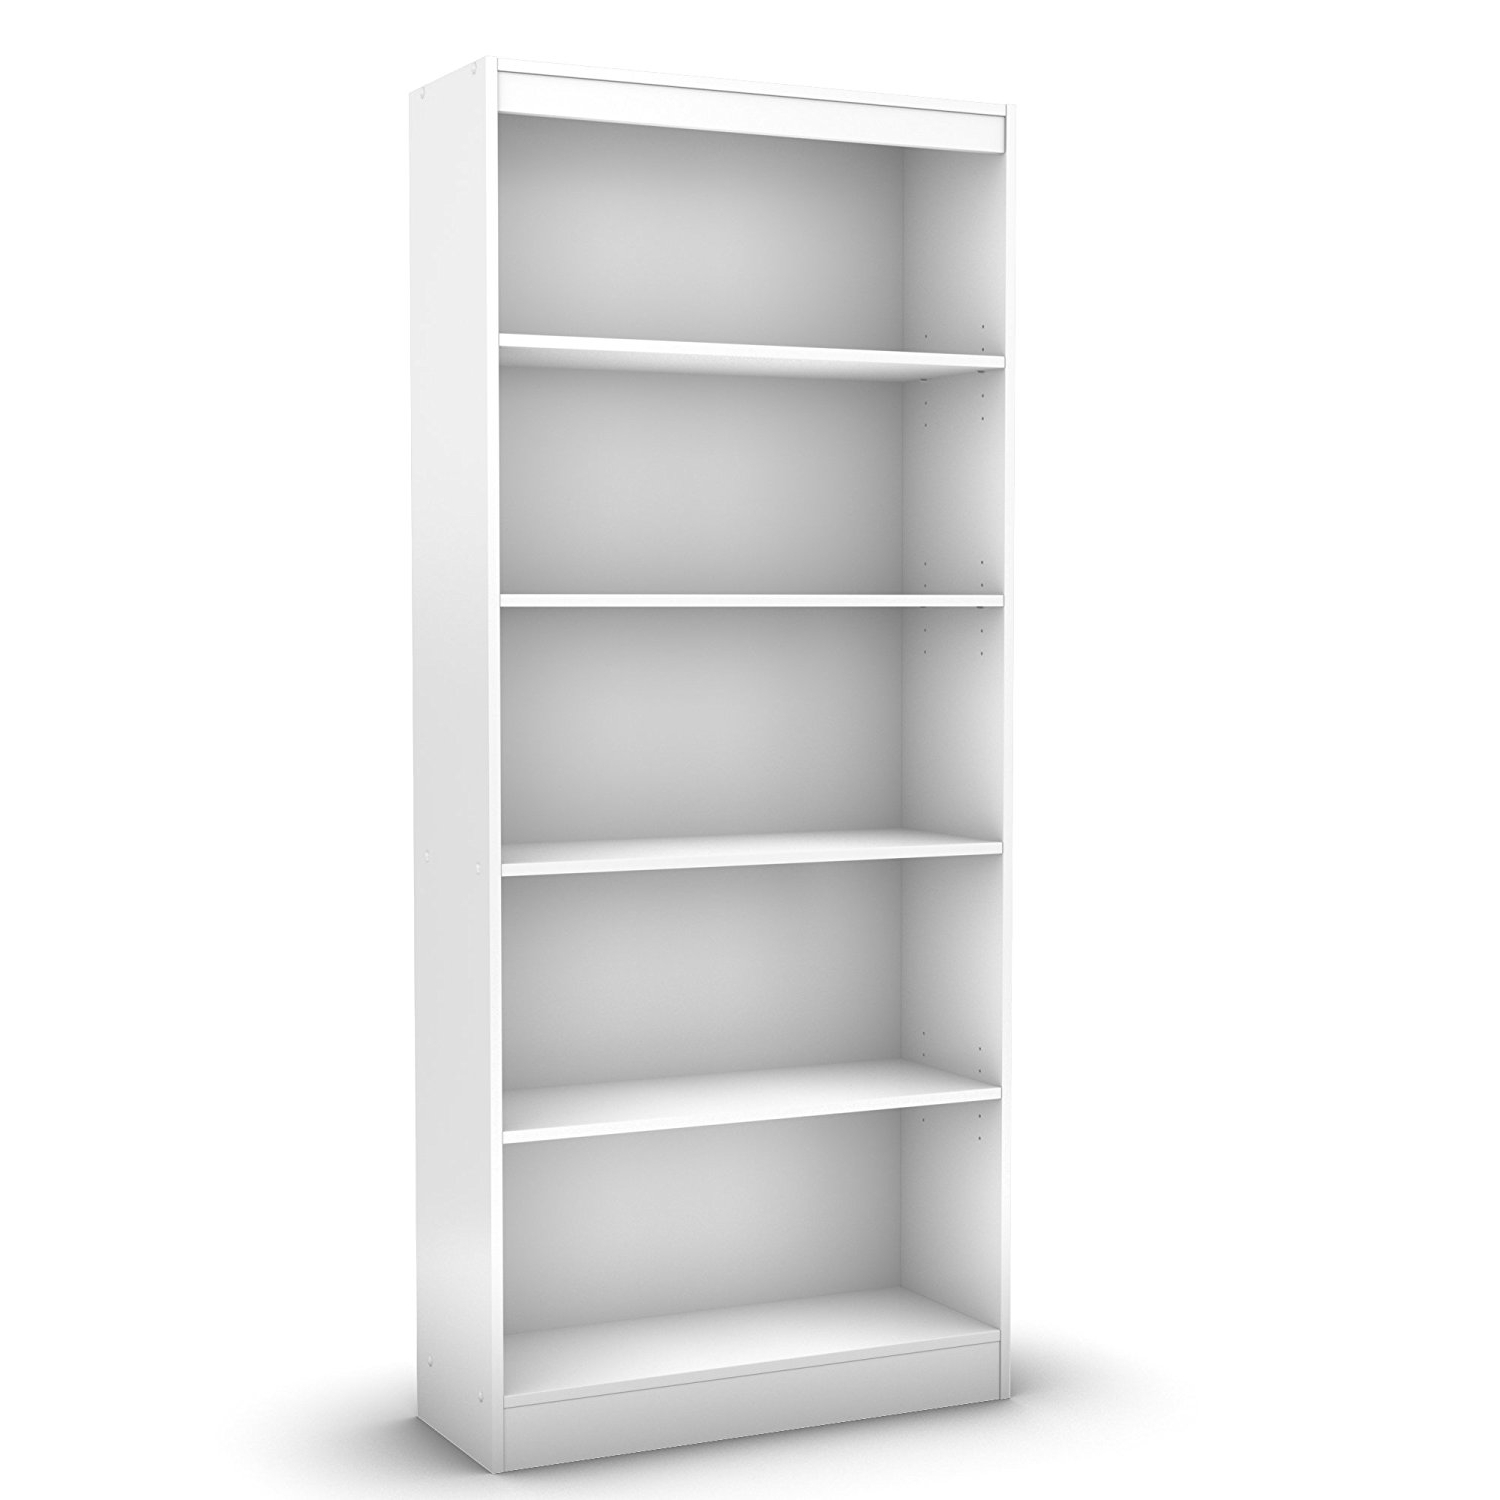 Fashionable South Shore Bookcases With Regard To Amazon: South Shore Axess Collection 5 Shelf Bookcase, Pure (View 7 of 15)